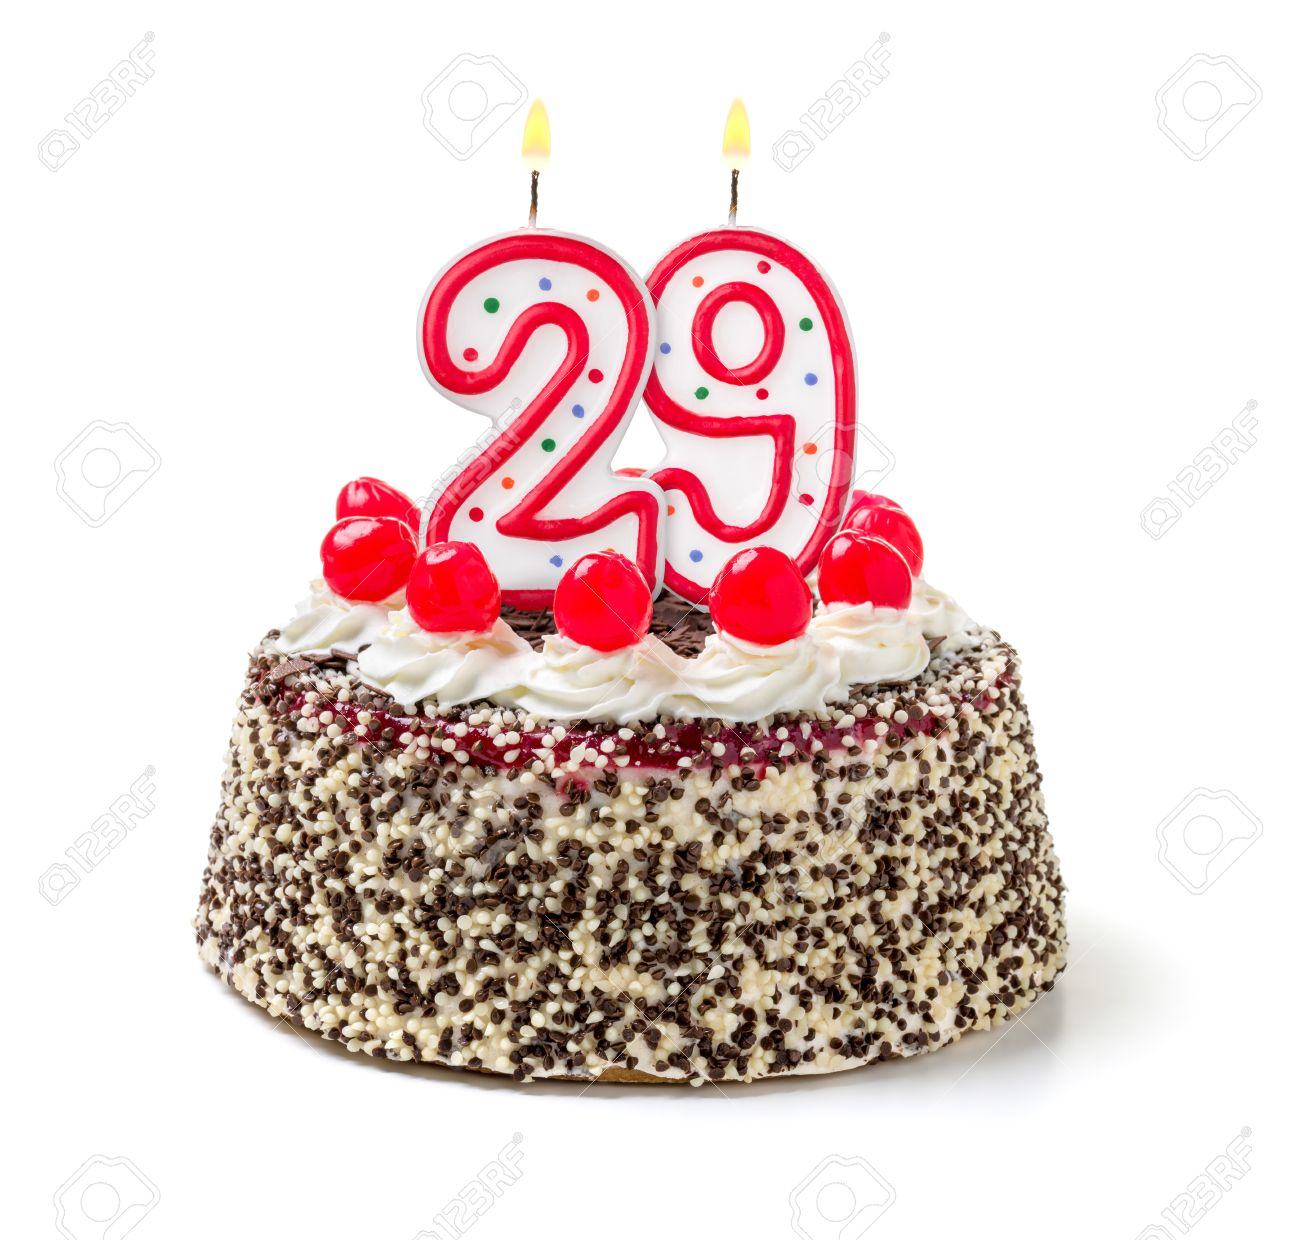 Astounding Birthday Cake With Burning Candle Number 29 Stock Photo Picture Personalised Birthday Cards Arneslily Jamesorg